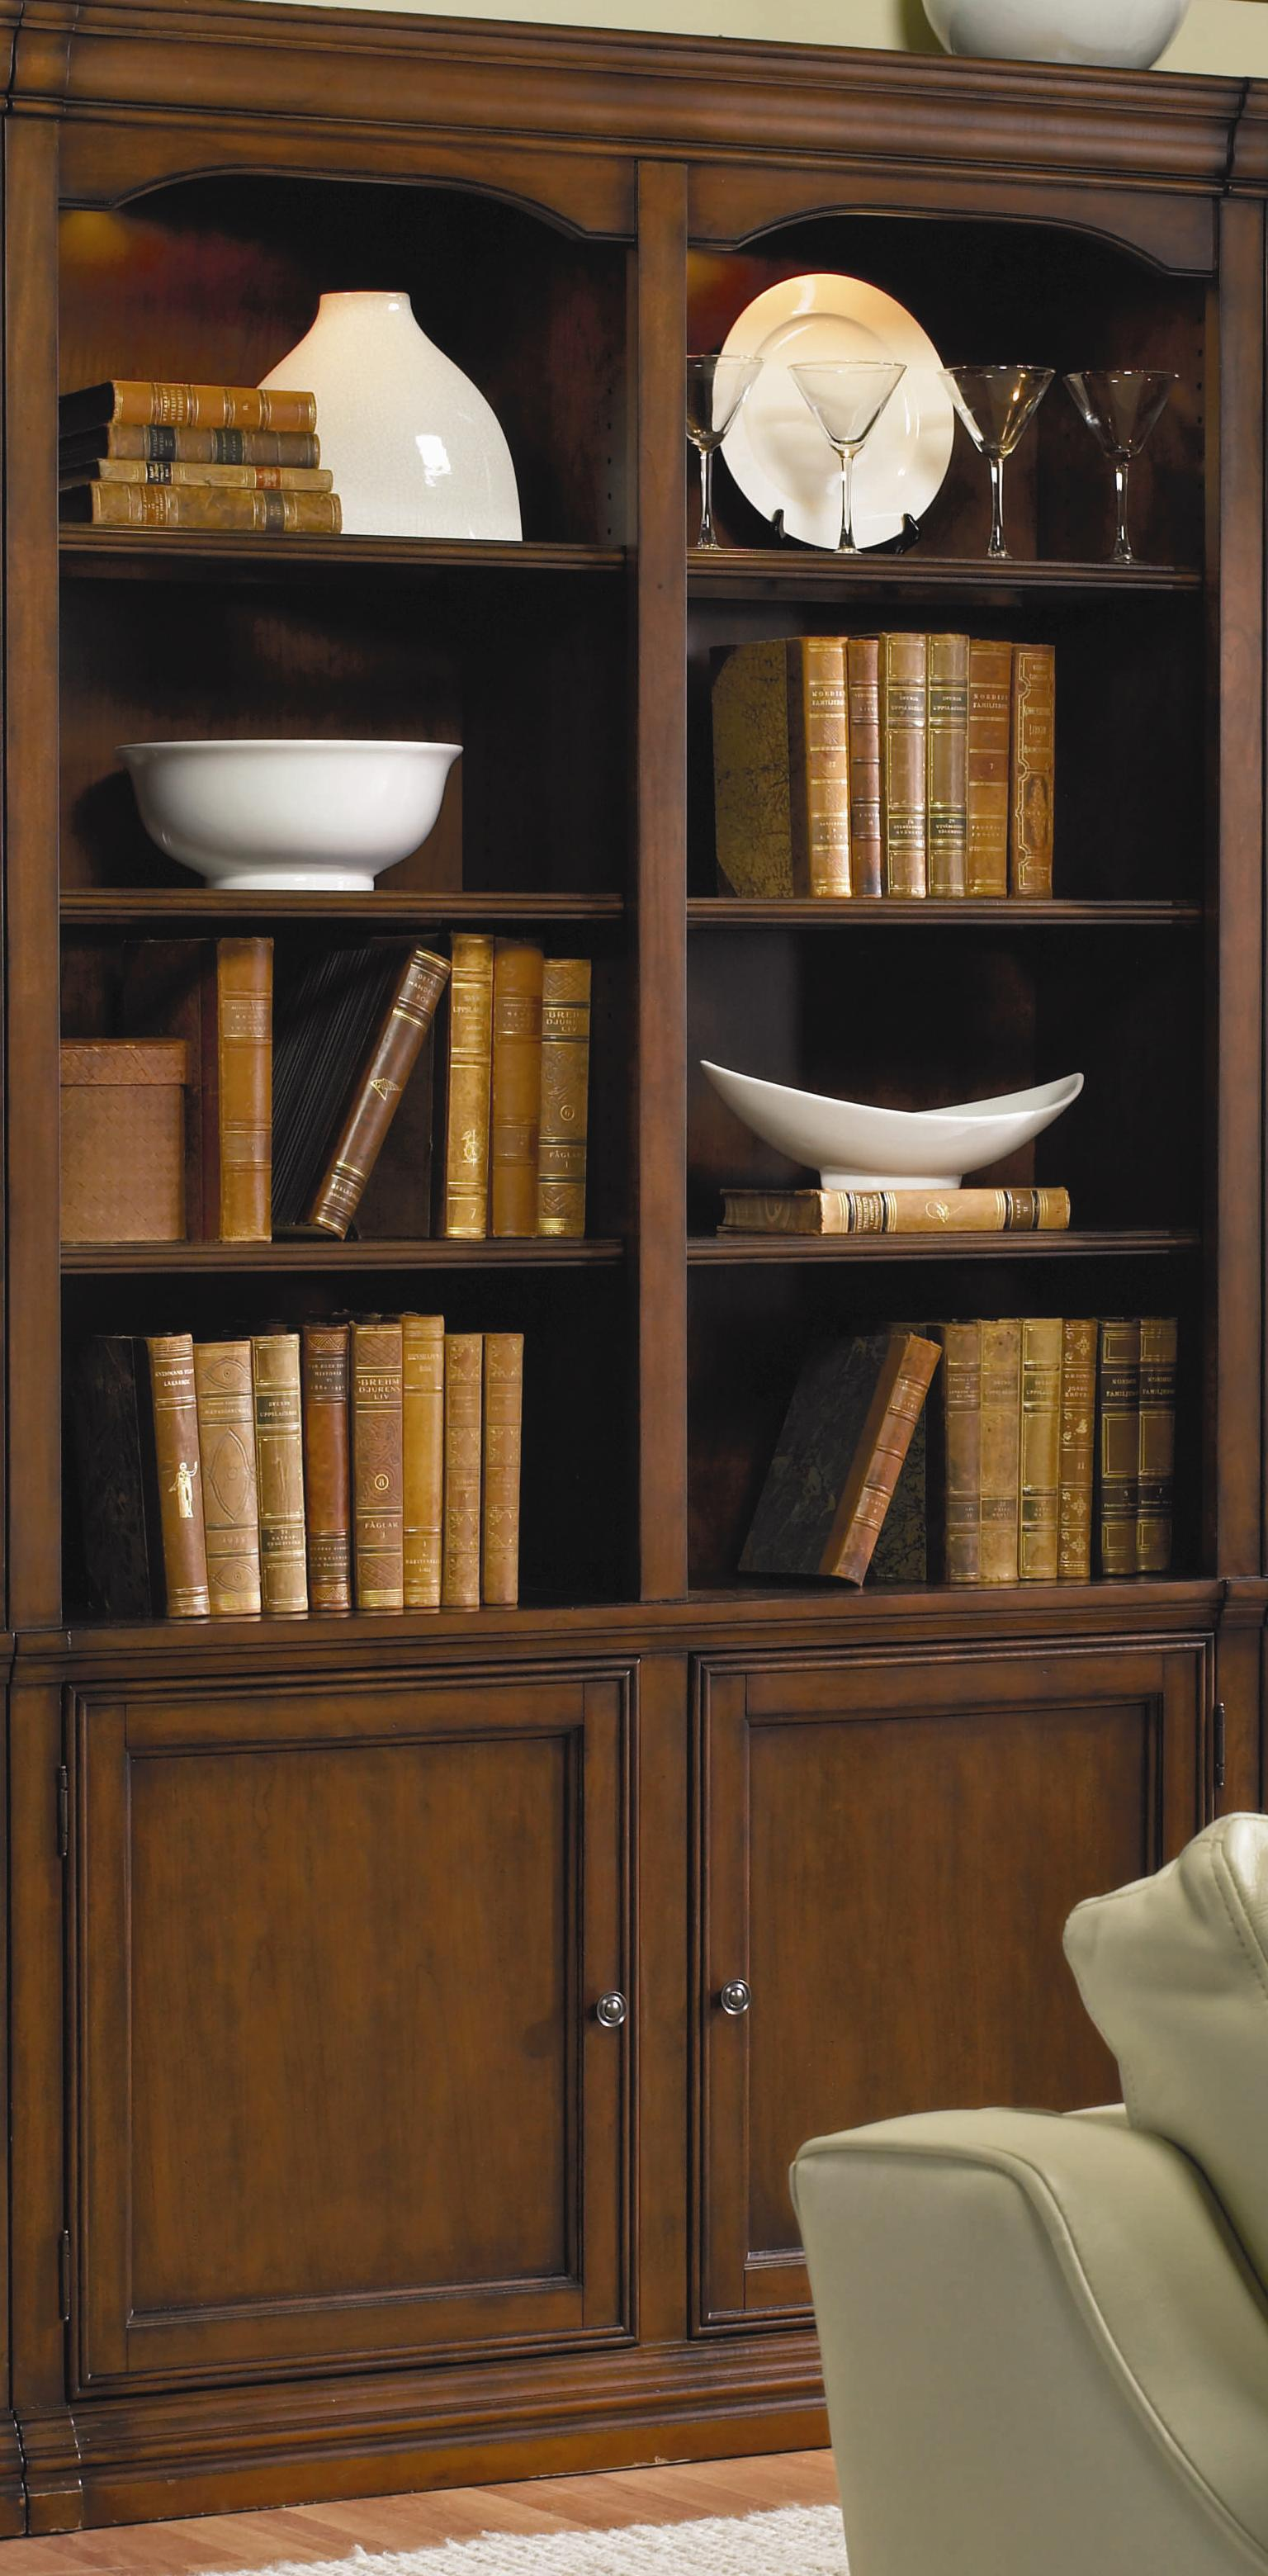 Hooker Furniture Cherry Creek  Wall Bookcase - Item Number: 258-70-448